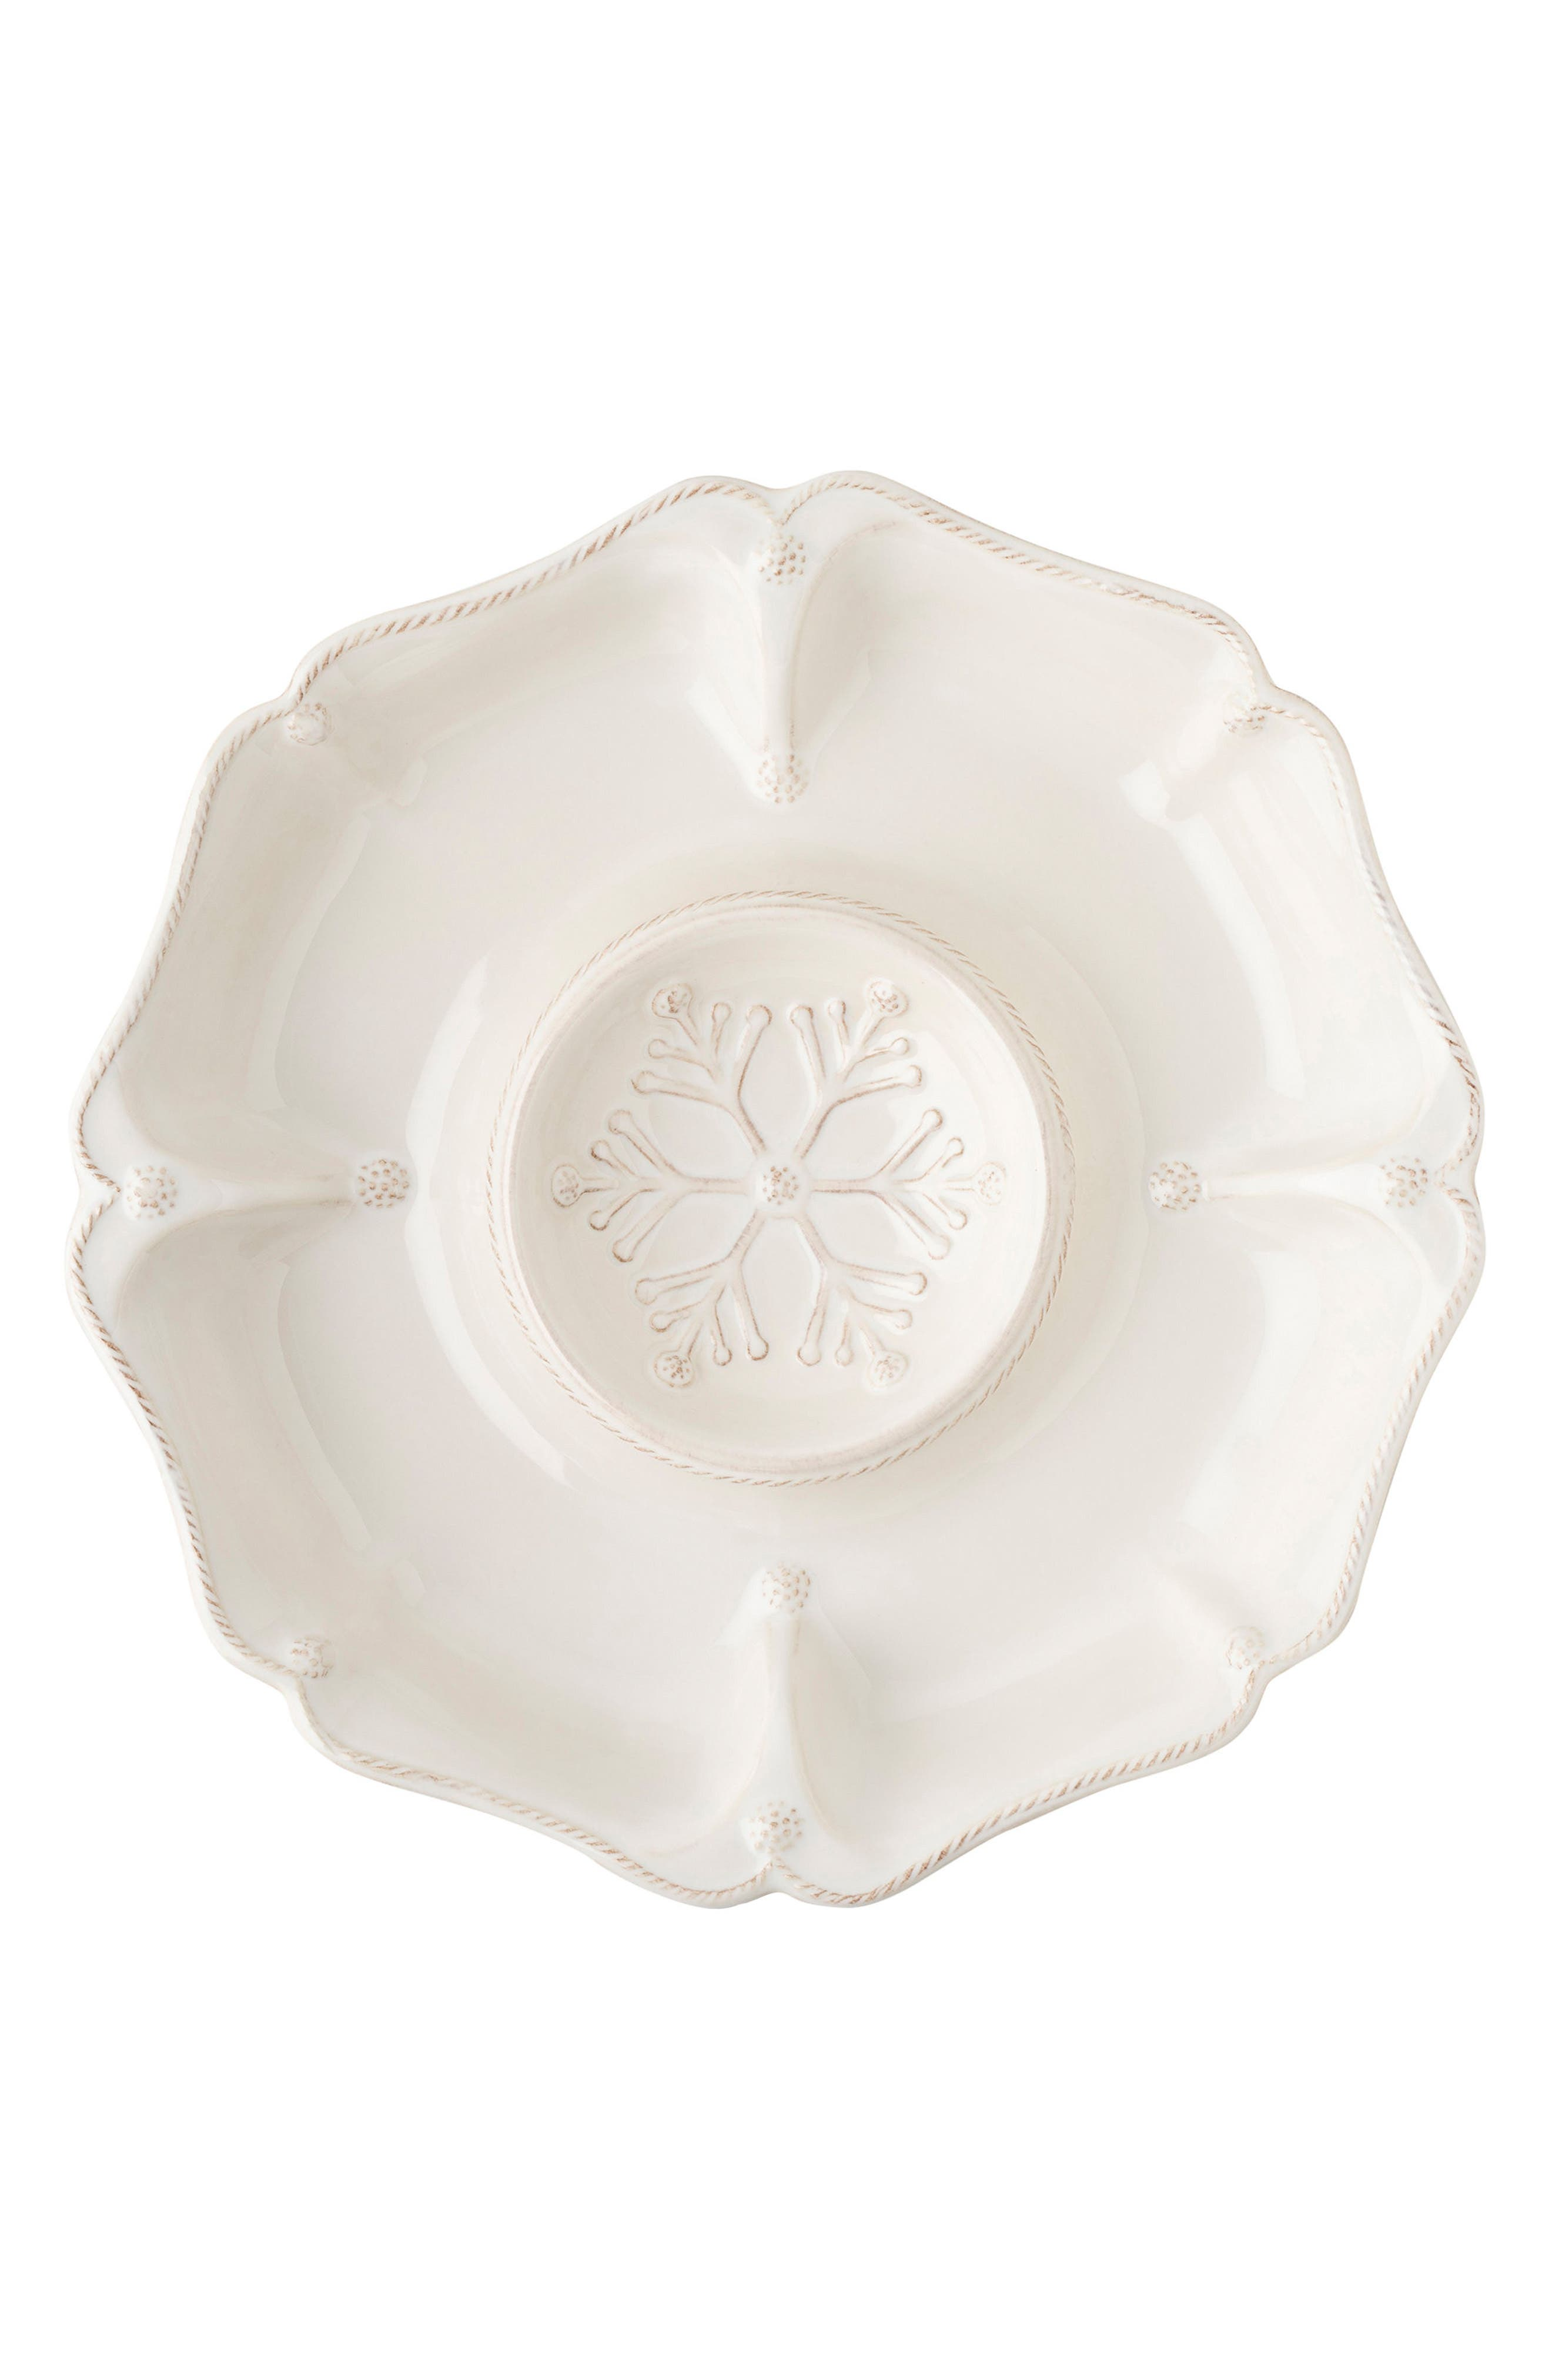 Berry & Thread Ceramic Hors D'Oeuvres Serving Tray,                         Main,                         color, Whitewash